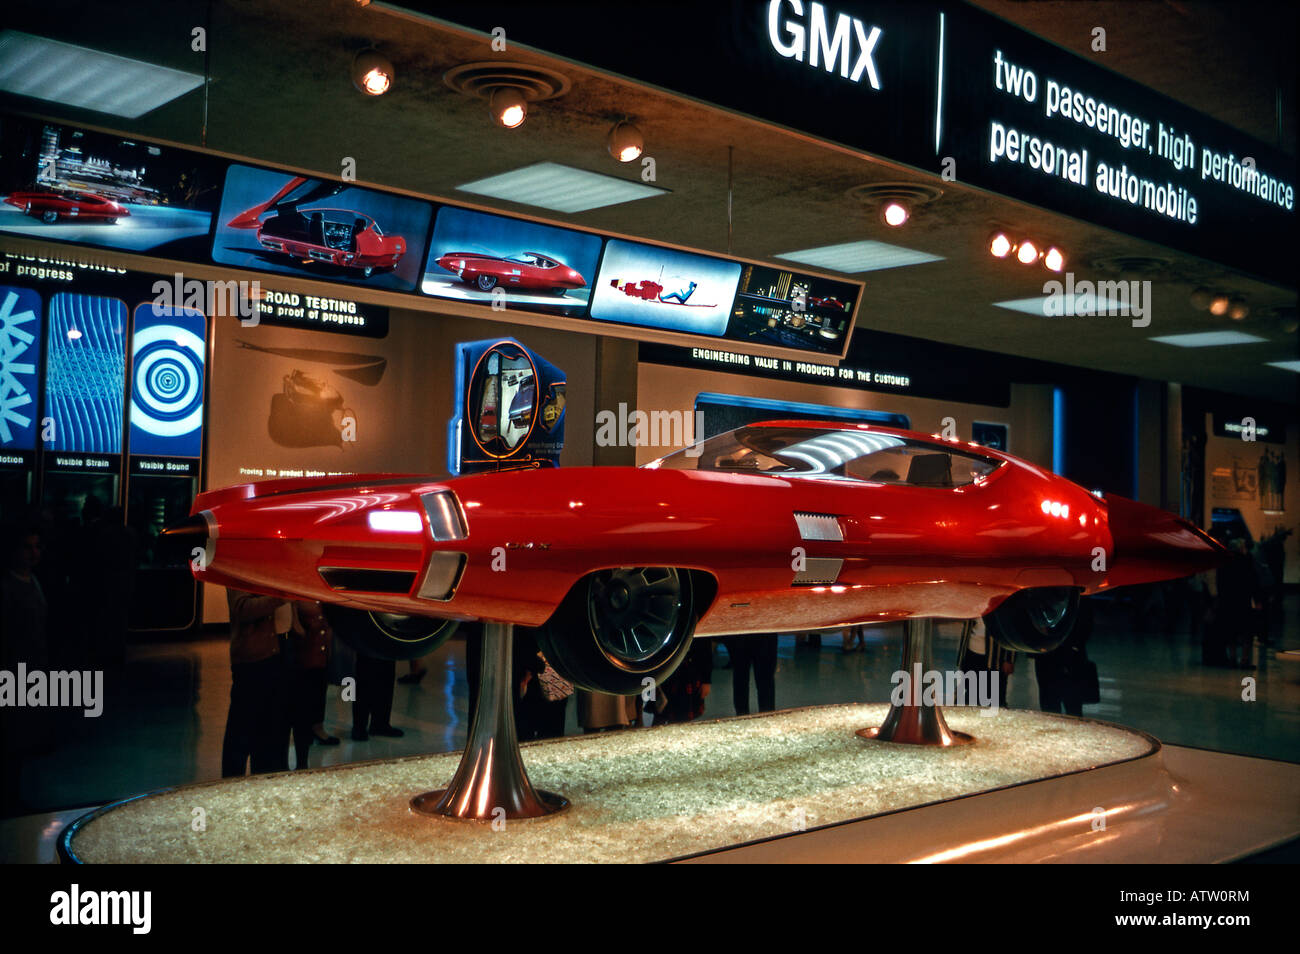 General Motors GM-X Stiletto concept car, la Feria Mundial de Nueva York 1964-5 Imagen De Stock